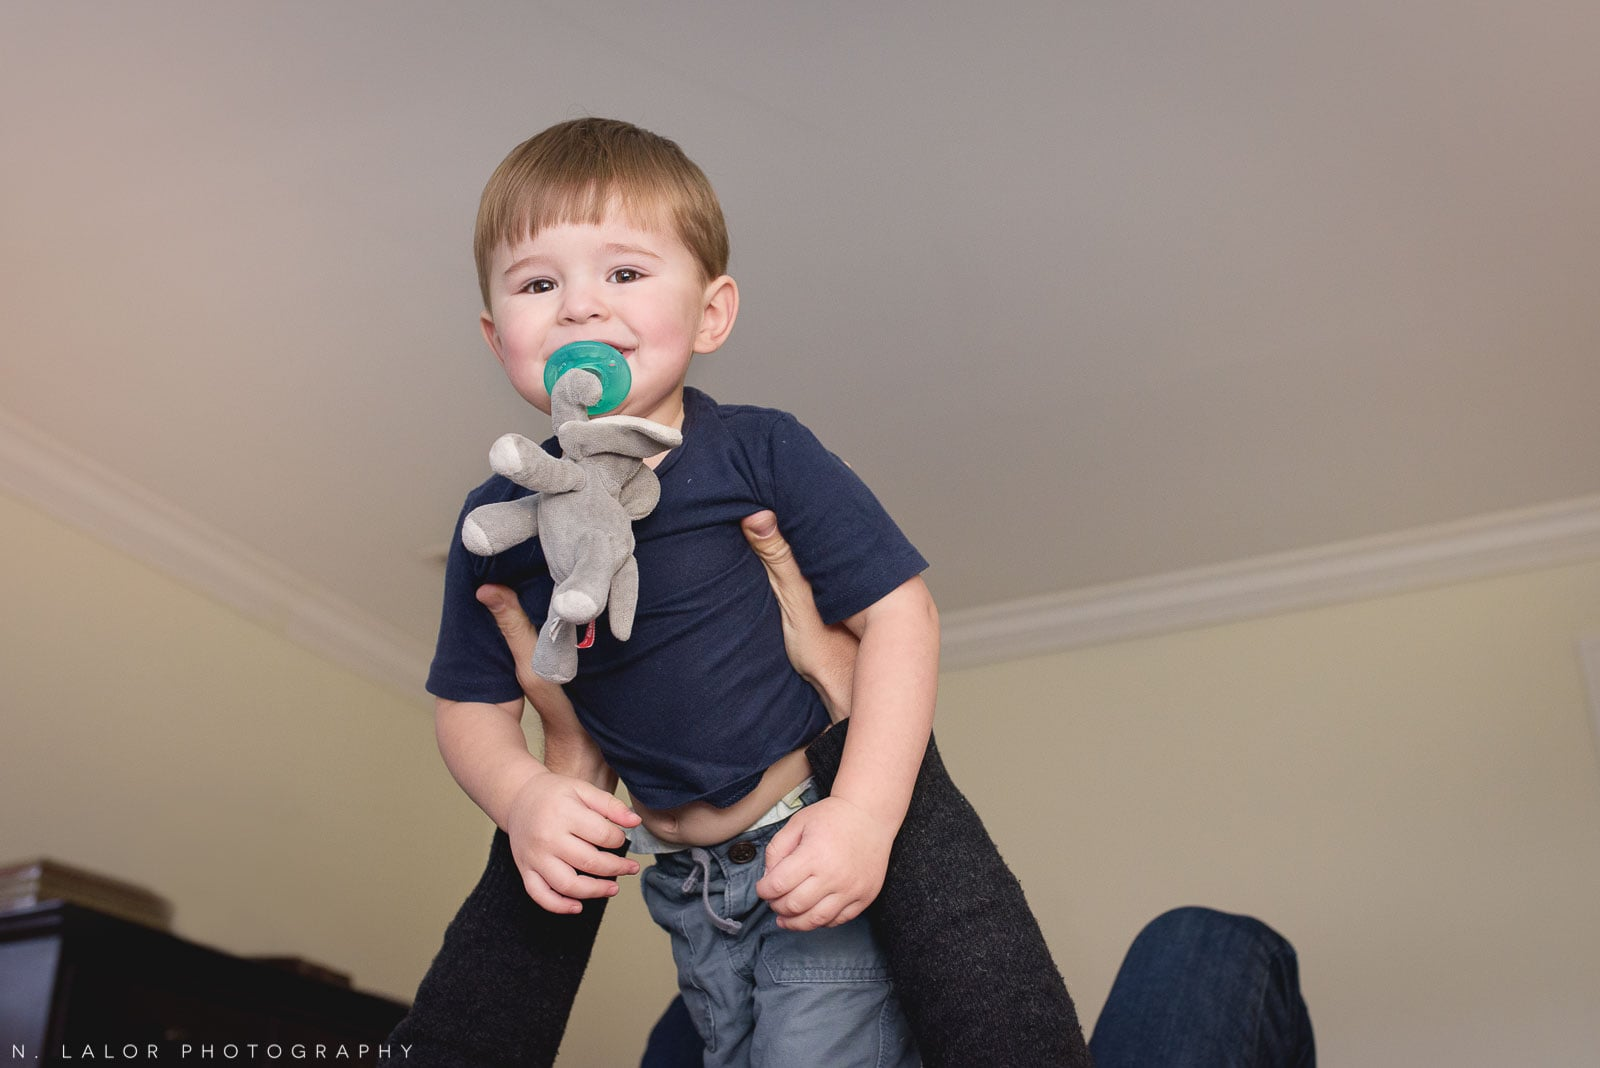 Lifestyle portrait of a toddler with his 'binky' by N. Lalor Photography.